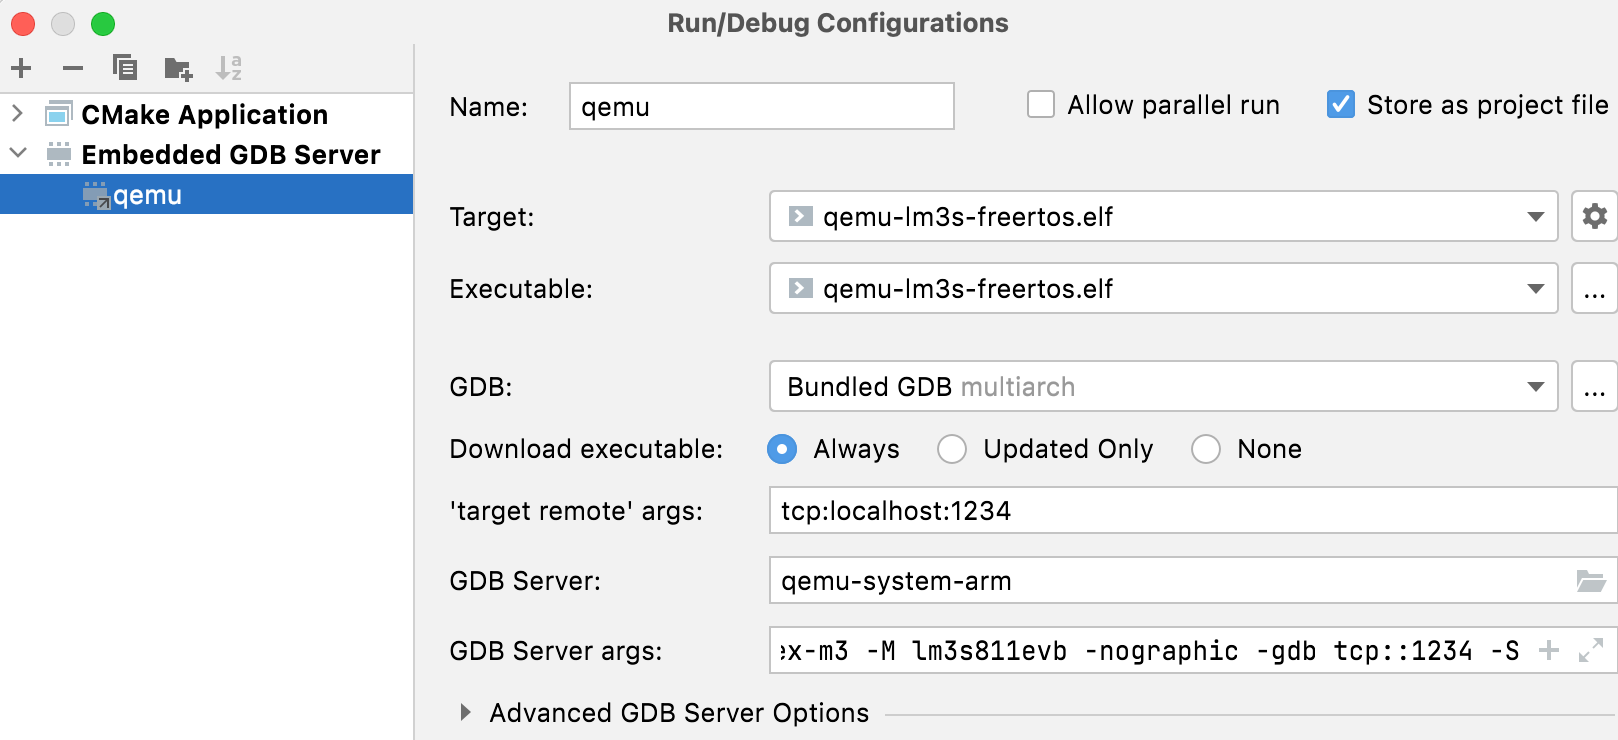 Embedded GDB Server configuration example